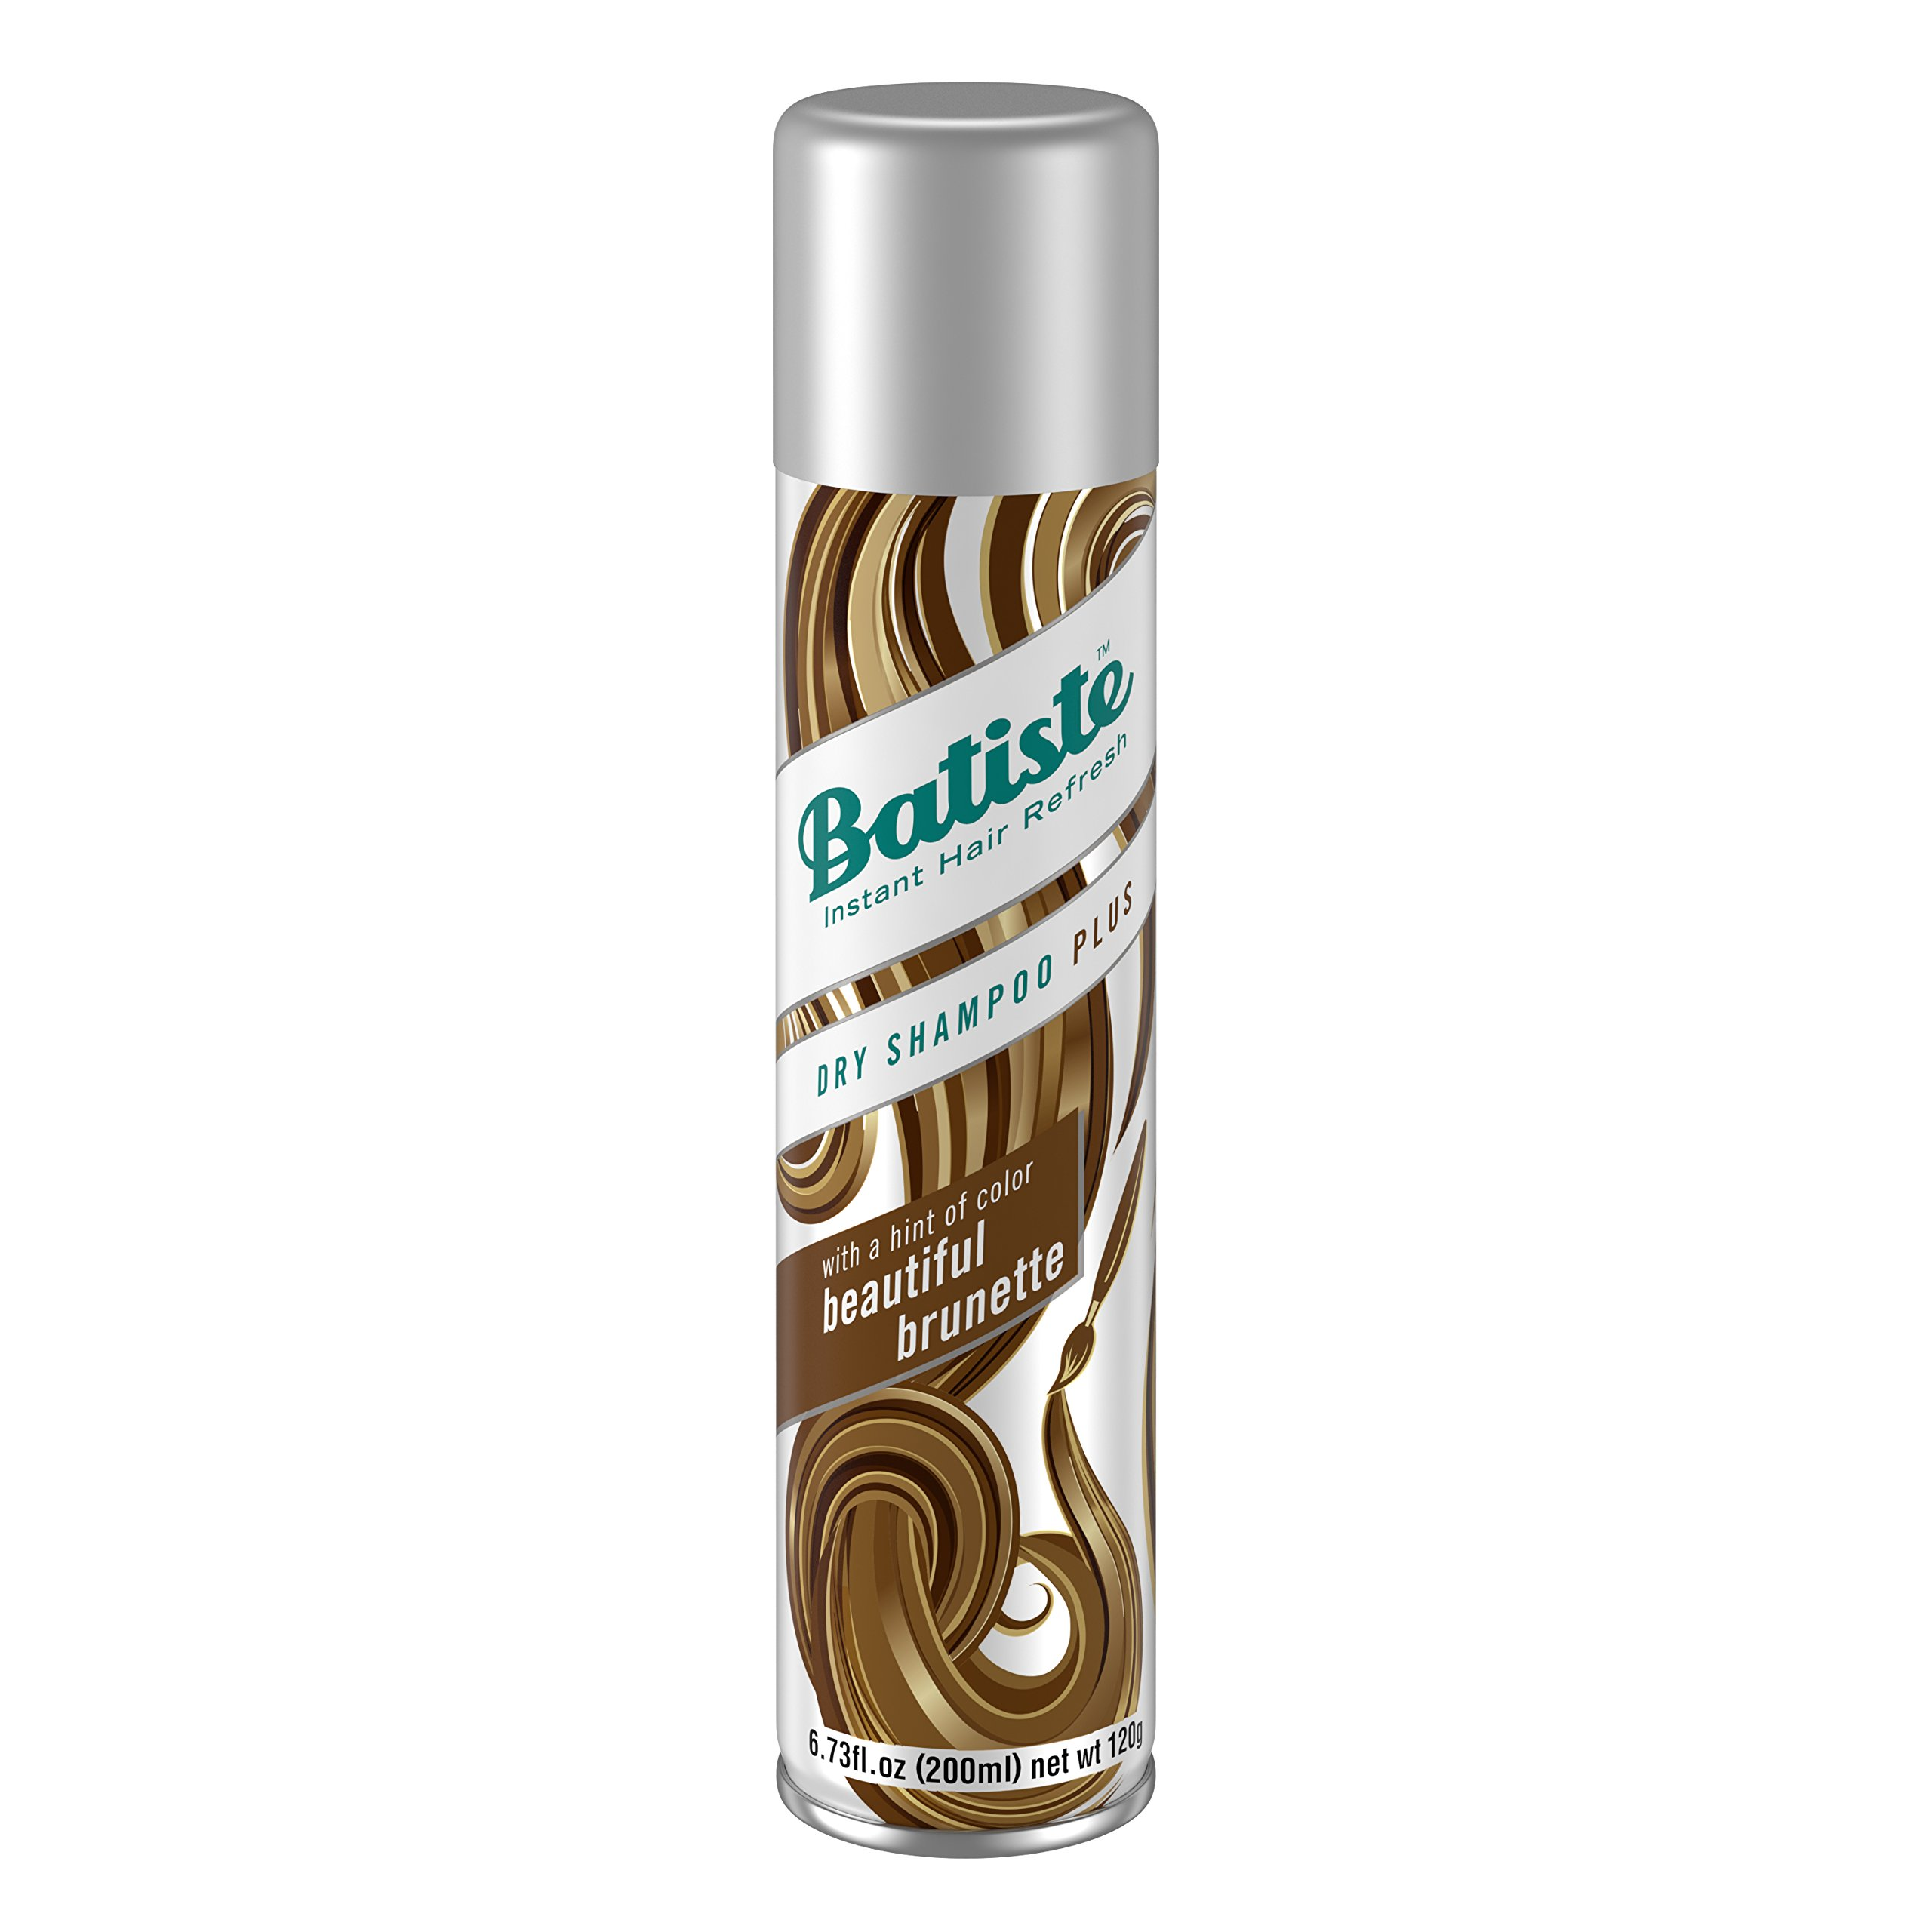 Amazon.com: Batiste Dry Shampoo Original, 5.05 oz: Beauty